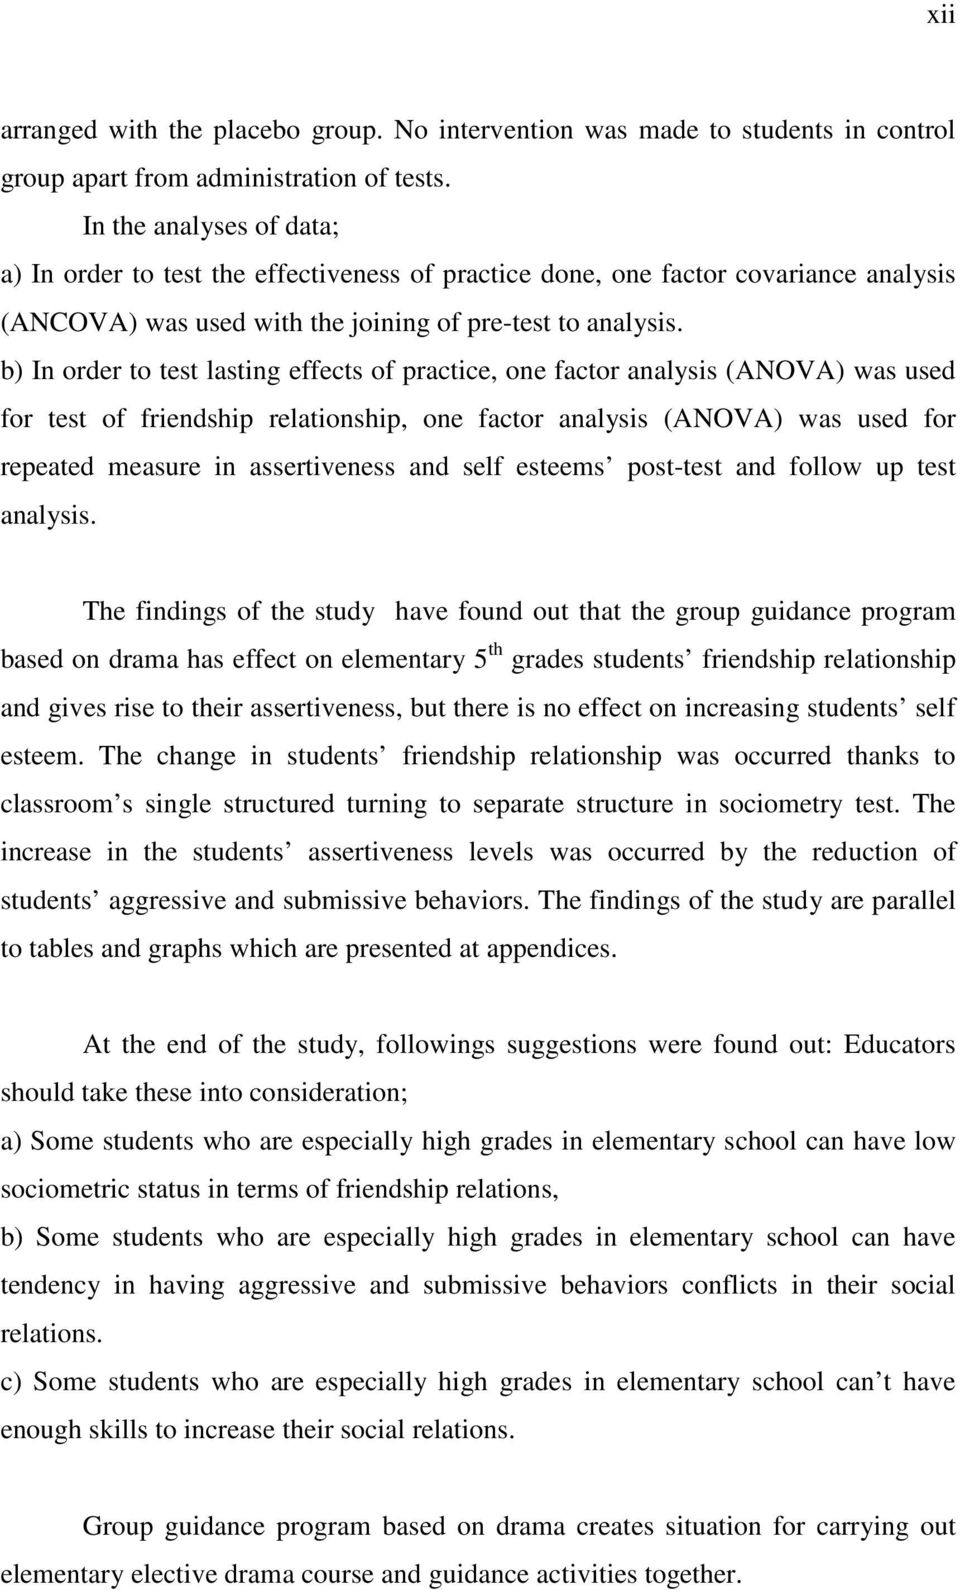 b) In order to test lasting effects of practice, one factor analysis (ANOVA) was used for test of friendship relationship, one factor analysis (ANOVA) was used for repeated measure in assertiveness